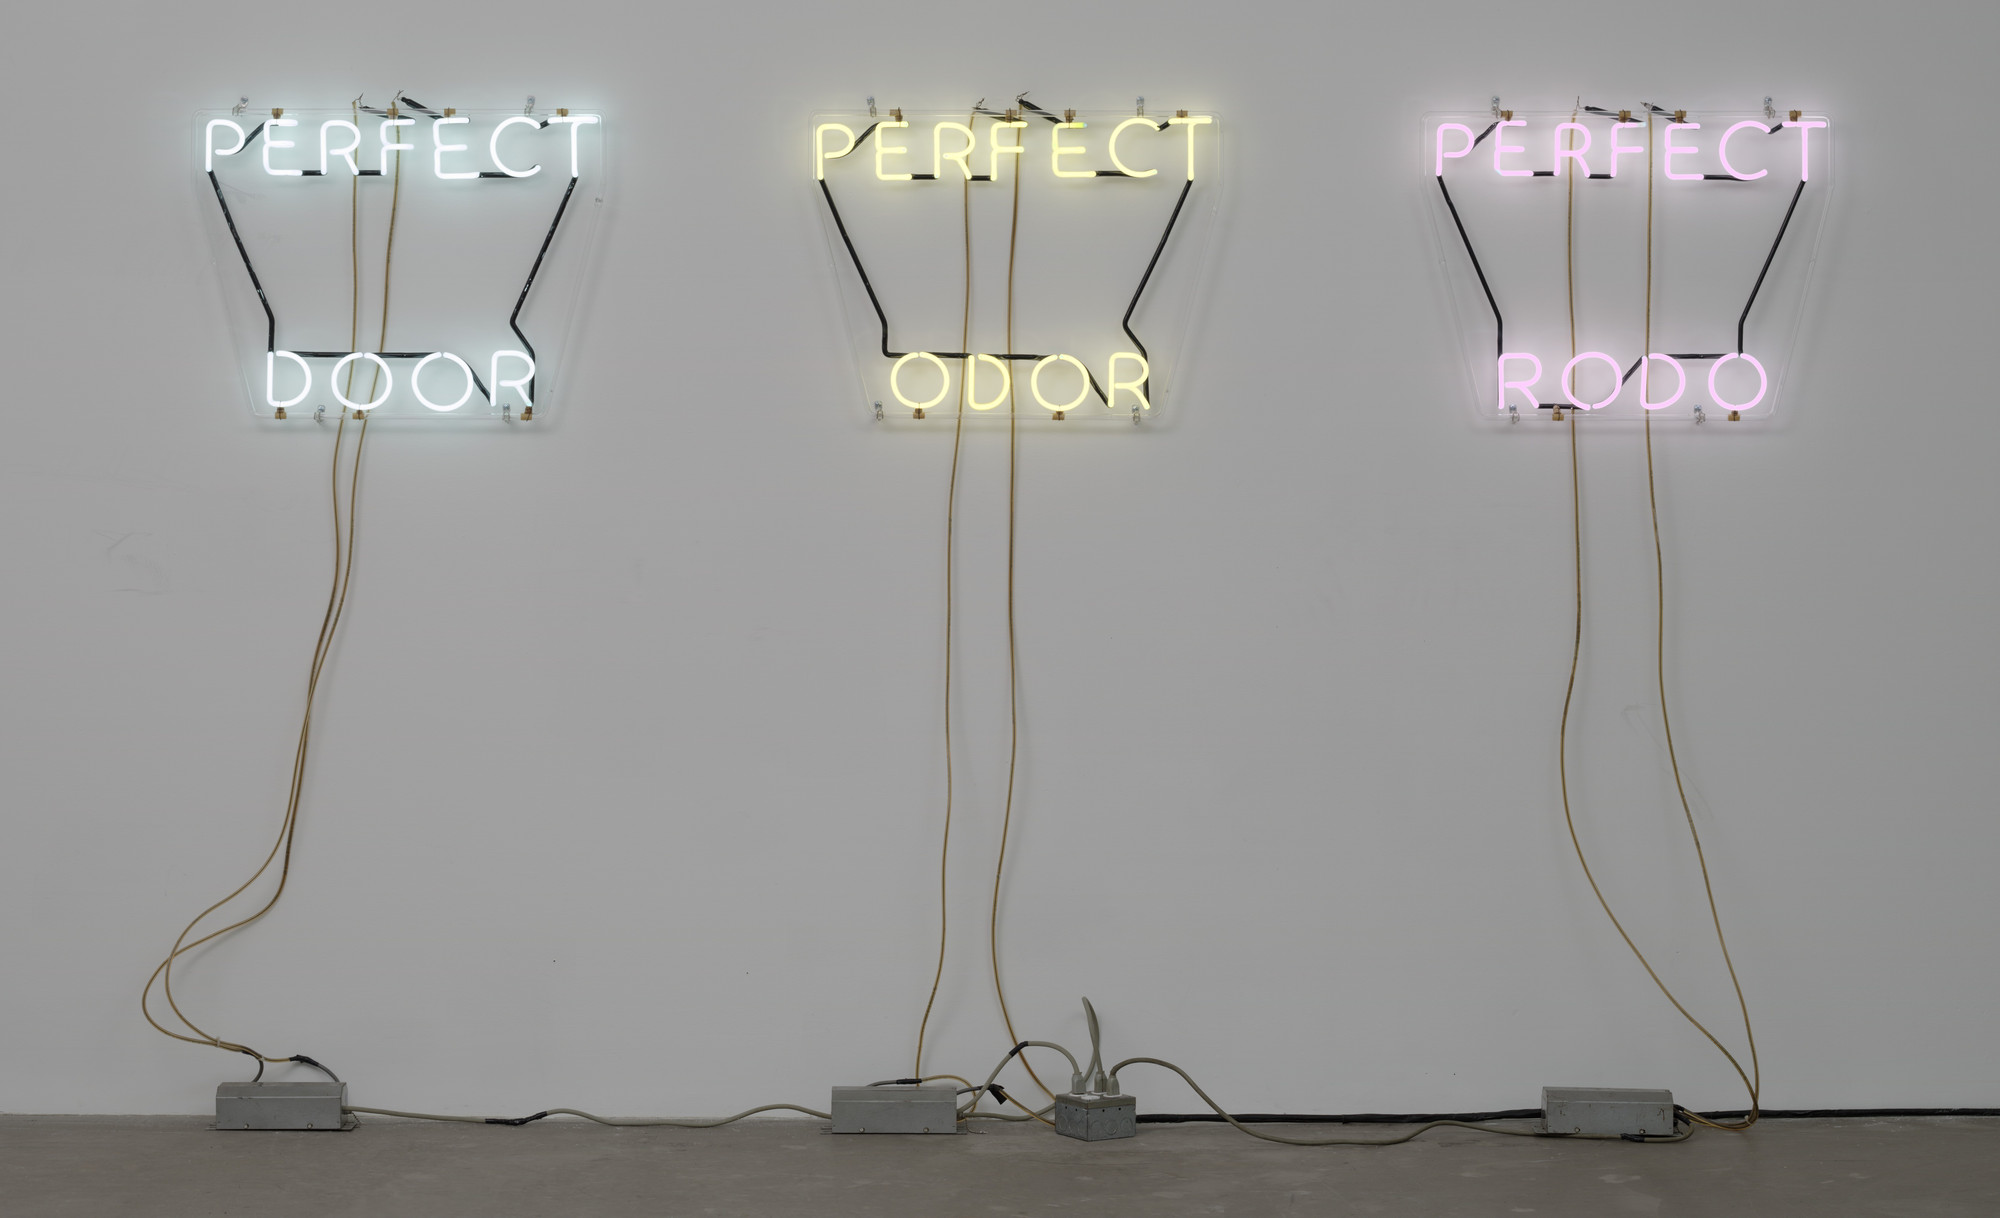 Bruce Nauman. Perfect Door/Perfect Odor/Perfect Rodo. 1972